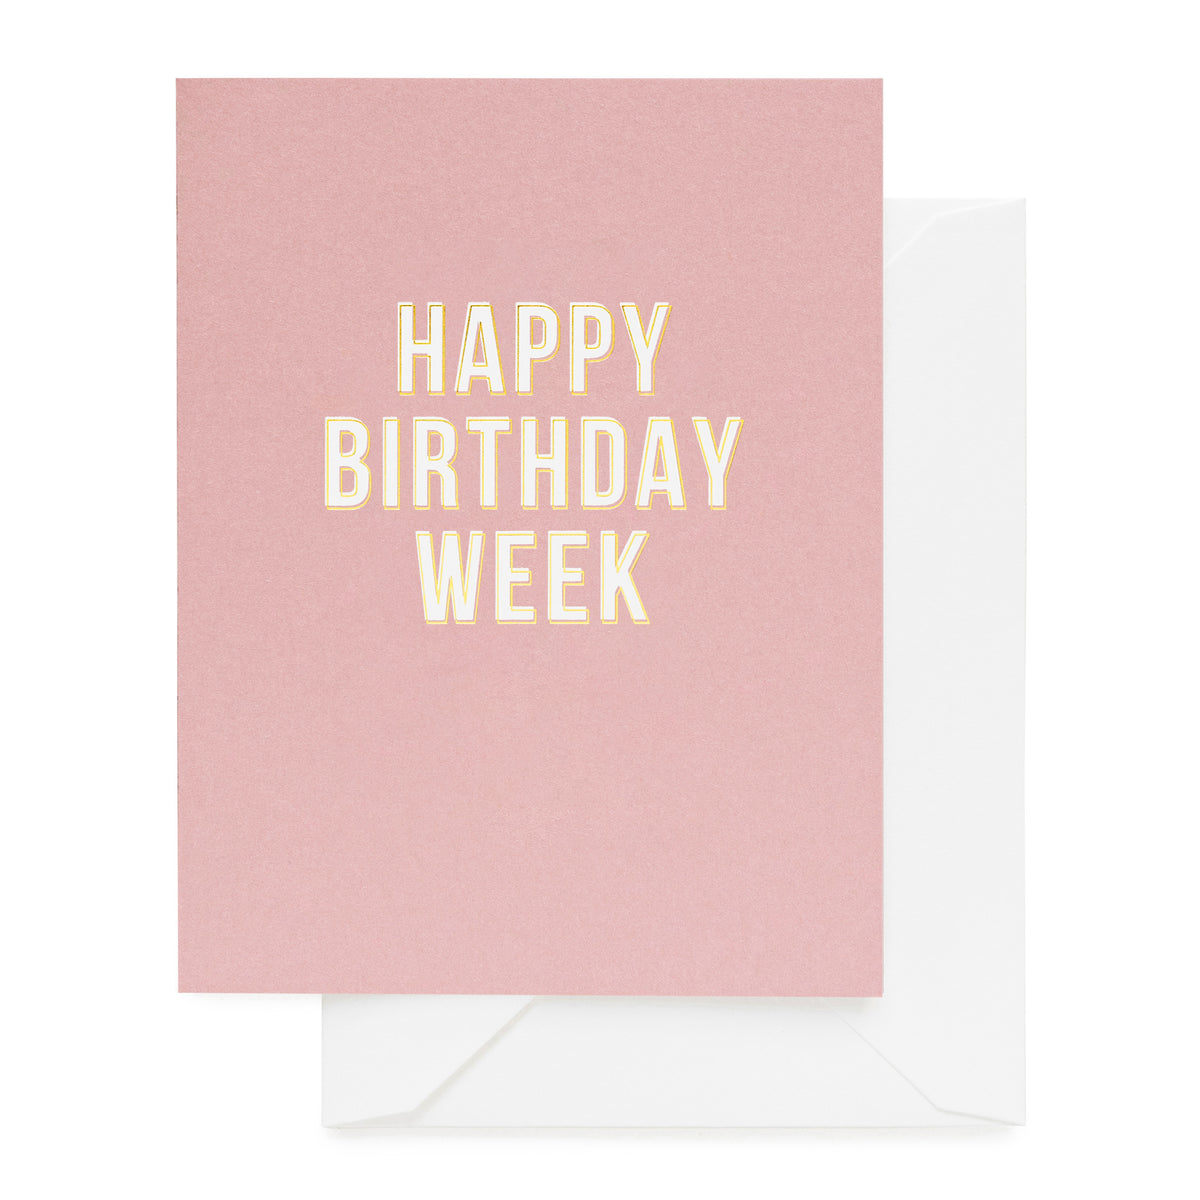 Dusty rose card foil printed in white and gold with Happy Birthday Week